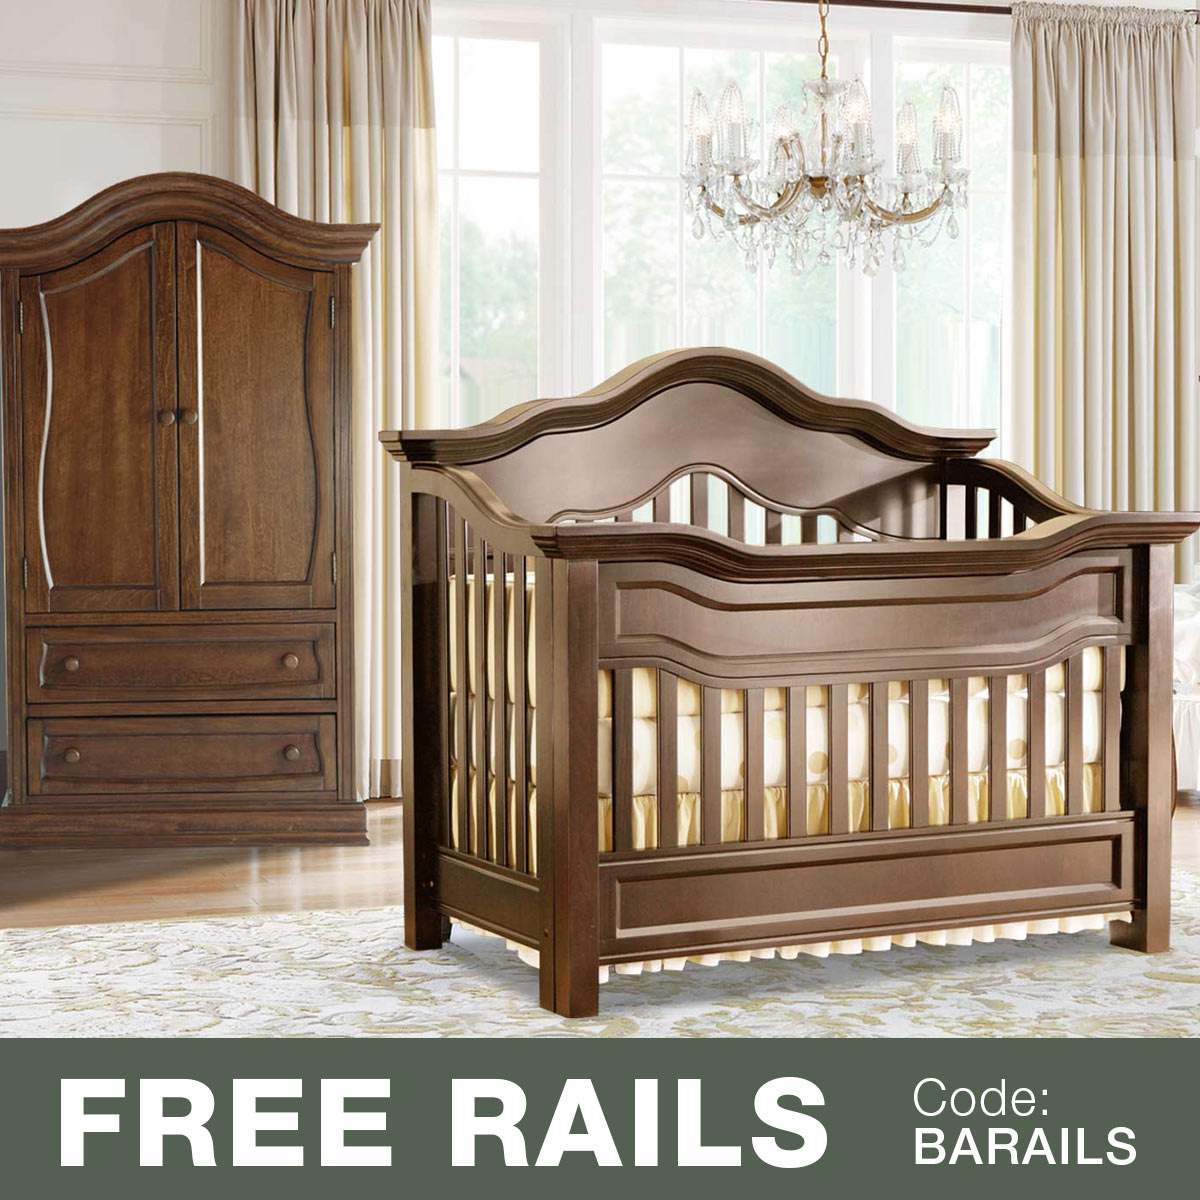 Baby appleseed millbury 2 piece nursery set convertible crib and armoire in coco free shipping